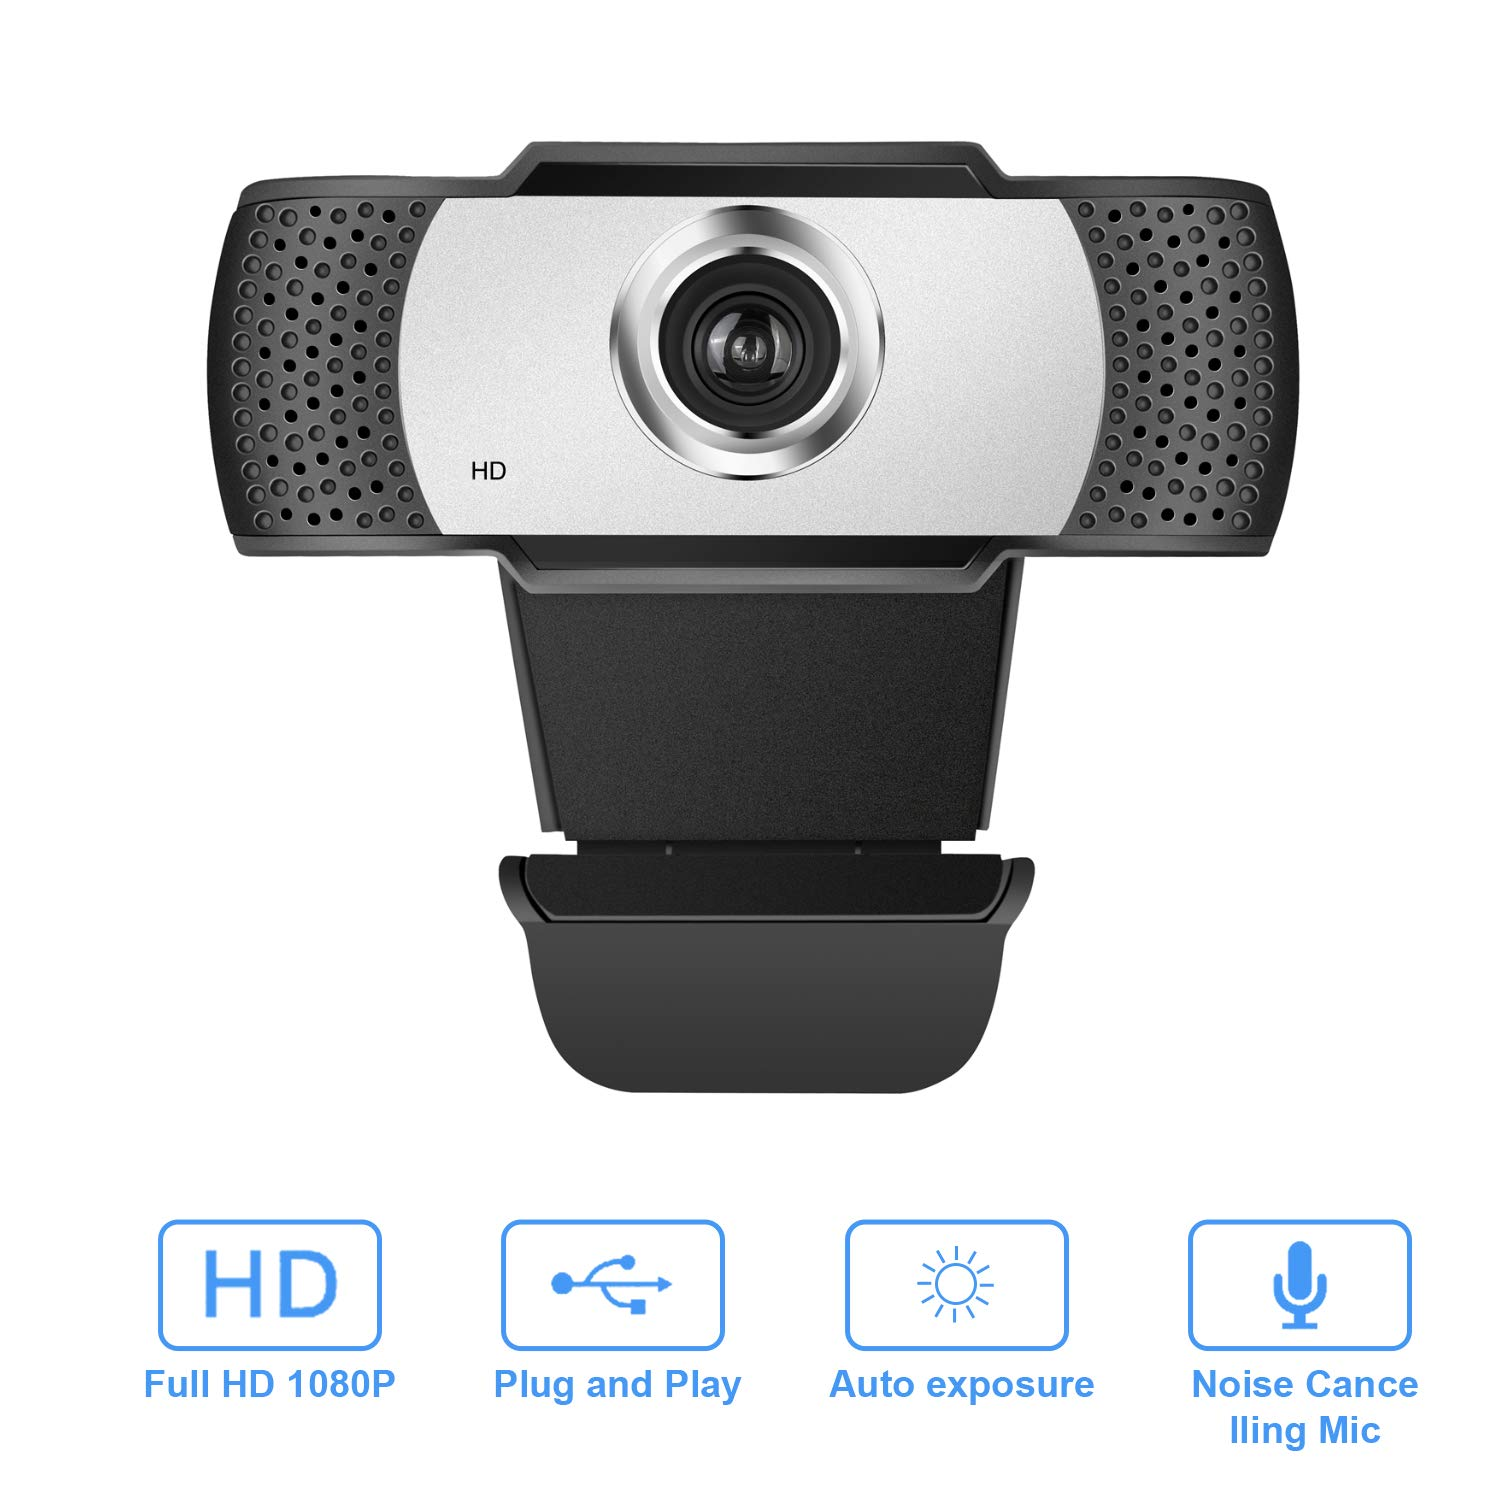 Full HD Webcam 1080P with Microphone - Wide Angle Webcams Streaming USB Web Camera - W302 Pro Computer Camera for Video Calling, Recording, Conferencing, Skype, OBS, PC Laptop